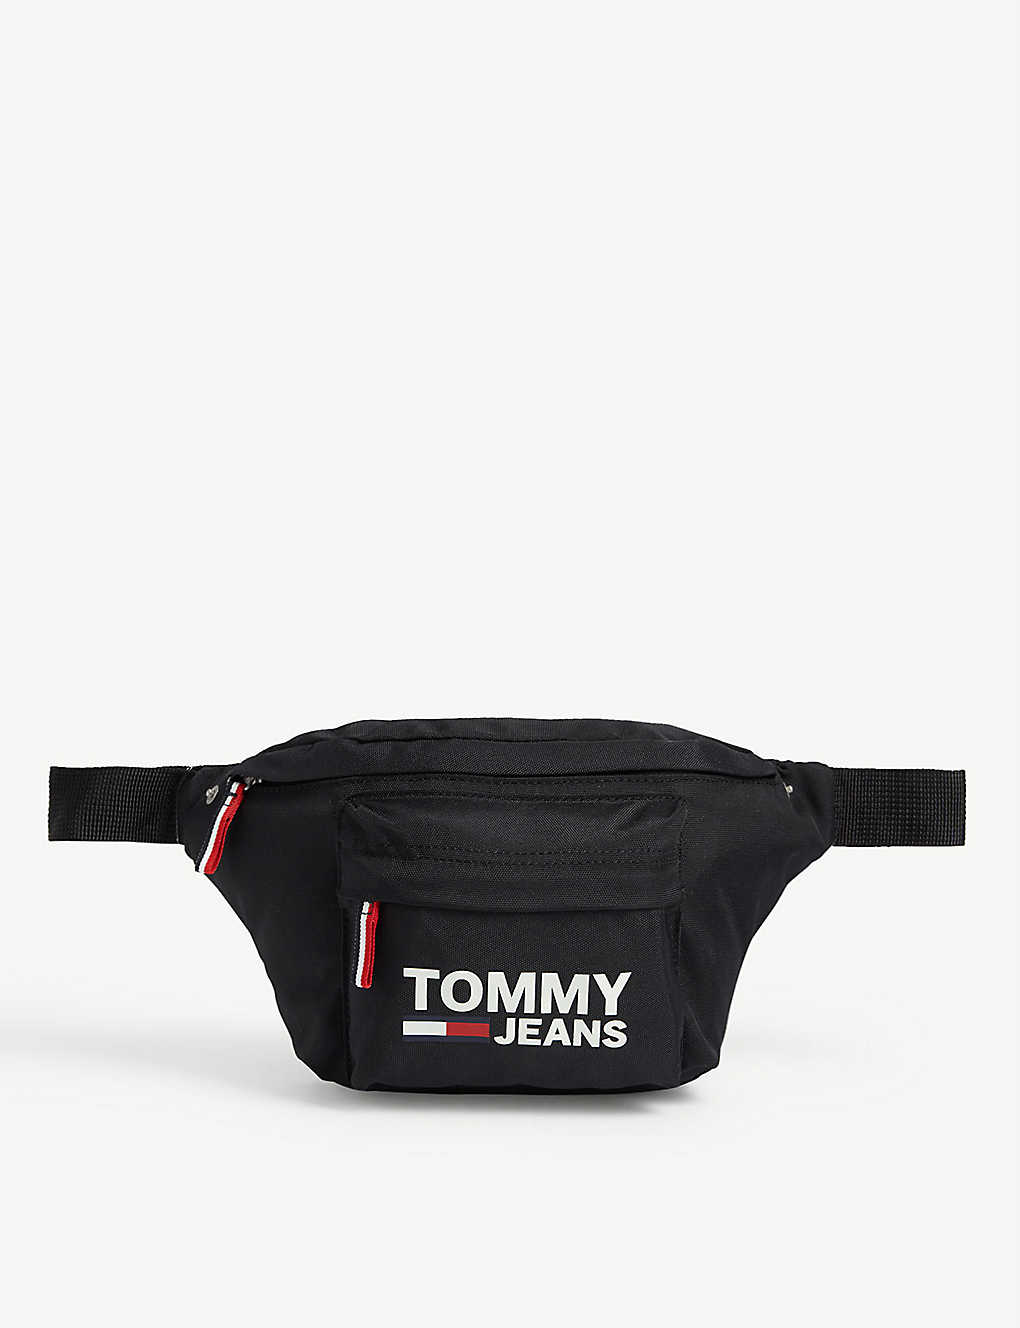 TOMMY JEANS: Cool City nylon belt bag